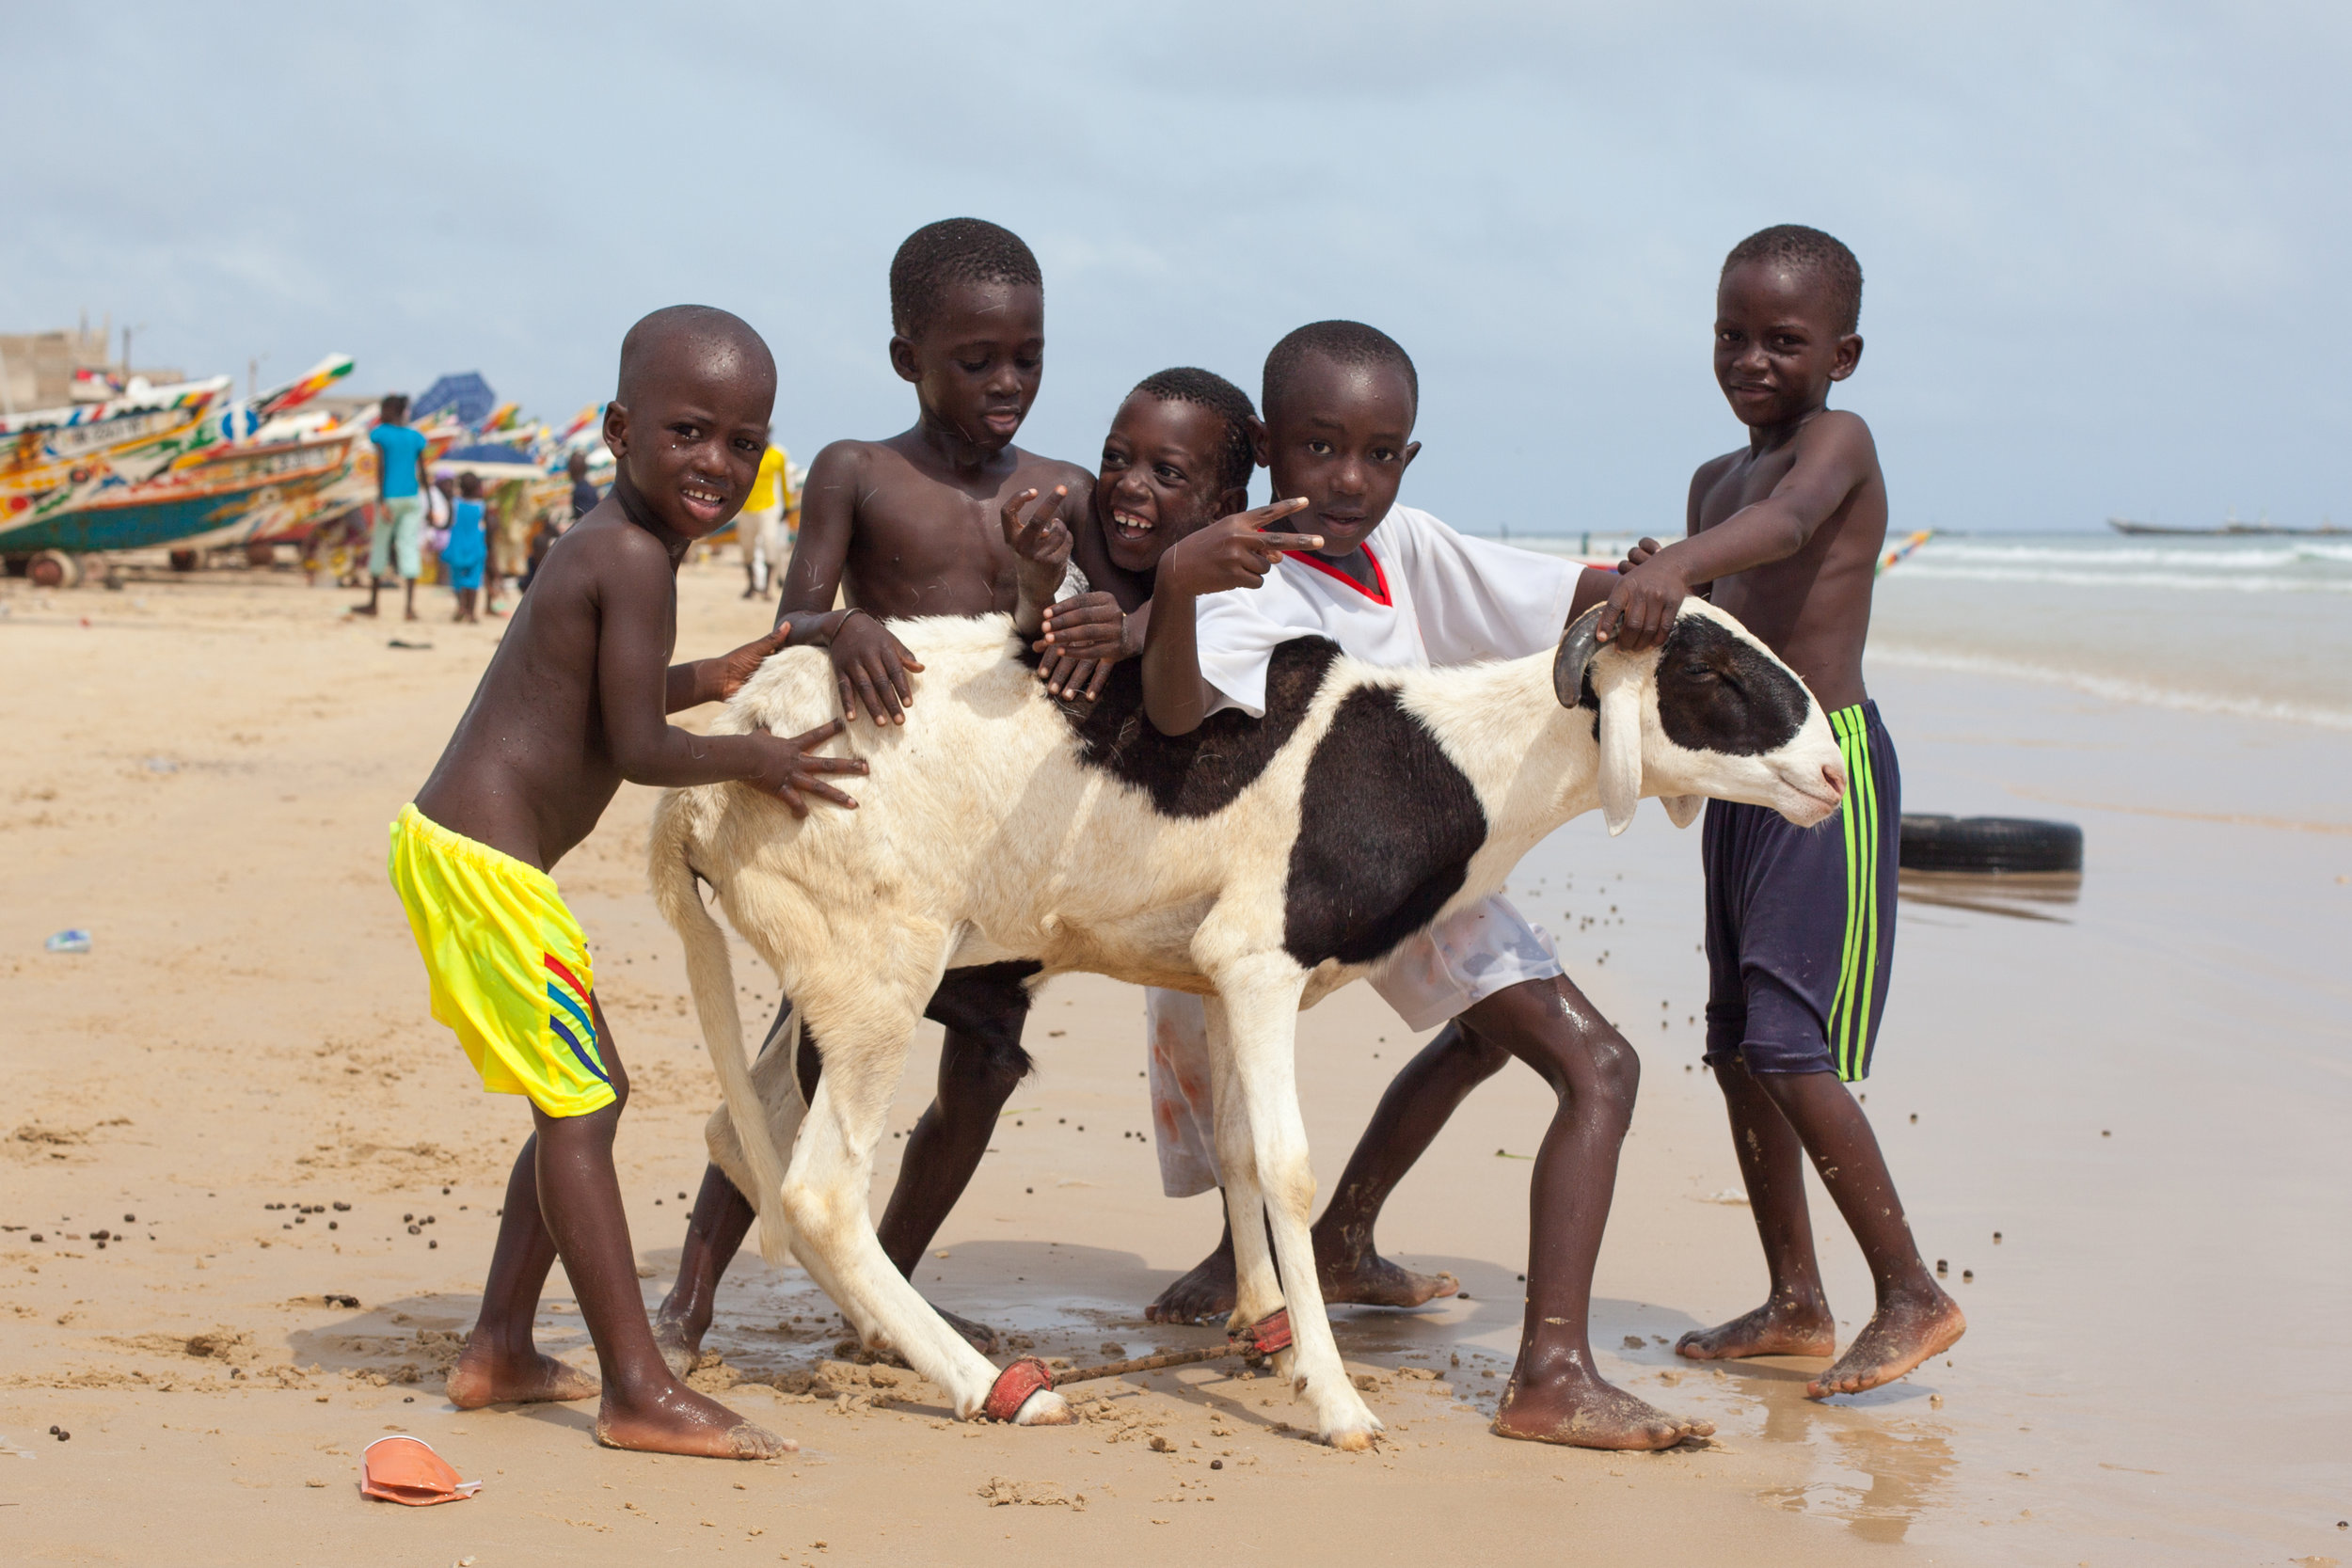 Children pose for a photo with a sheep before the Tabaski Festival on a beach in Dakar, Senegal.